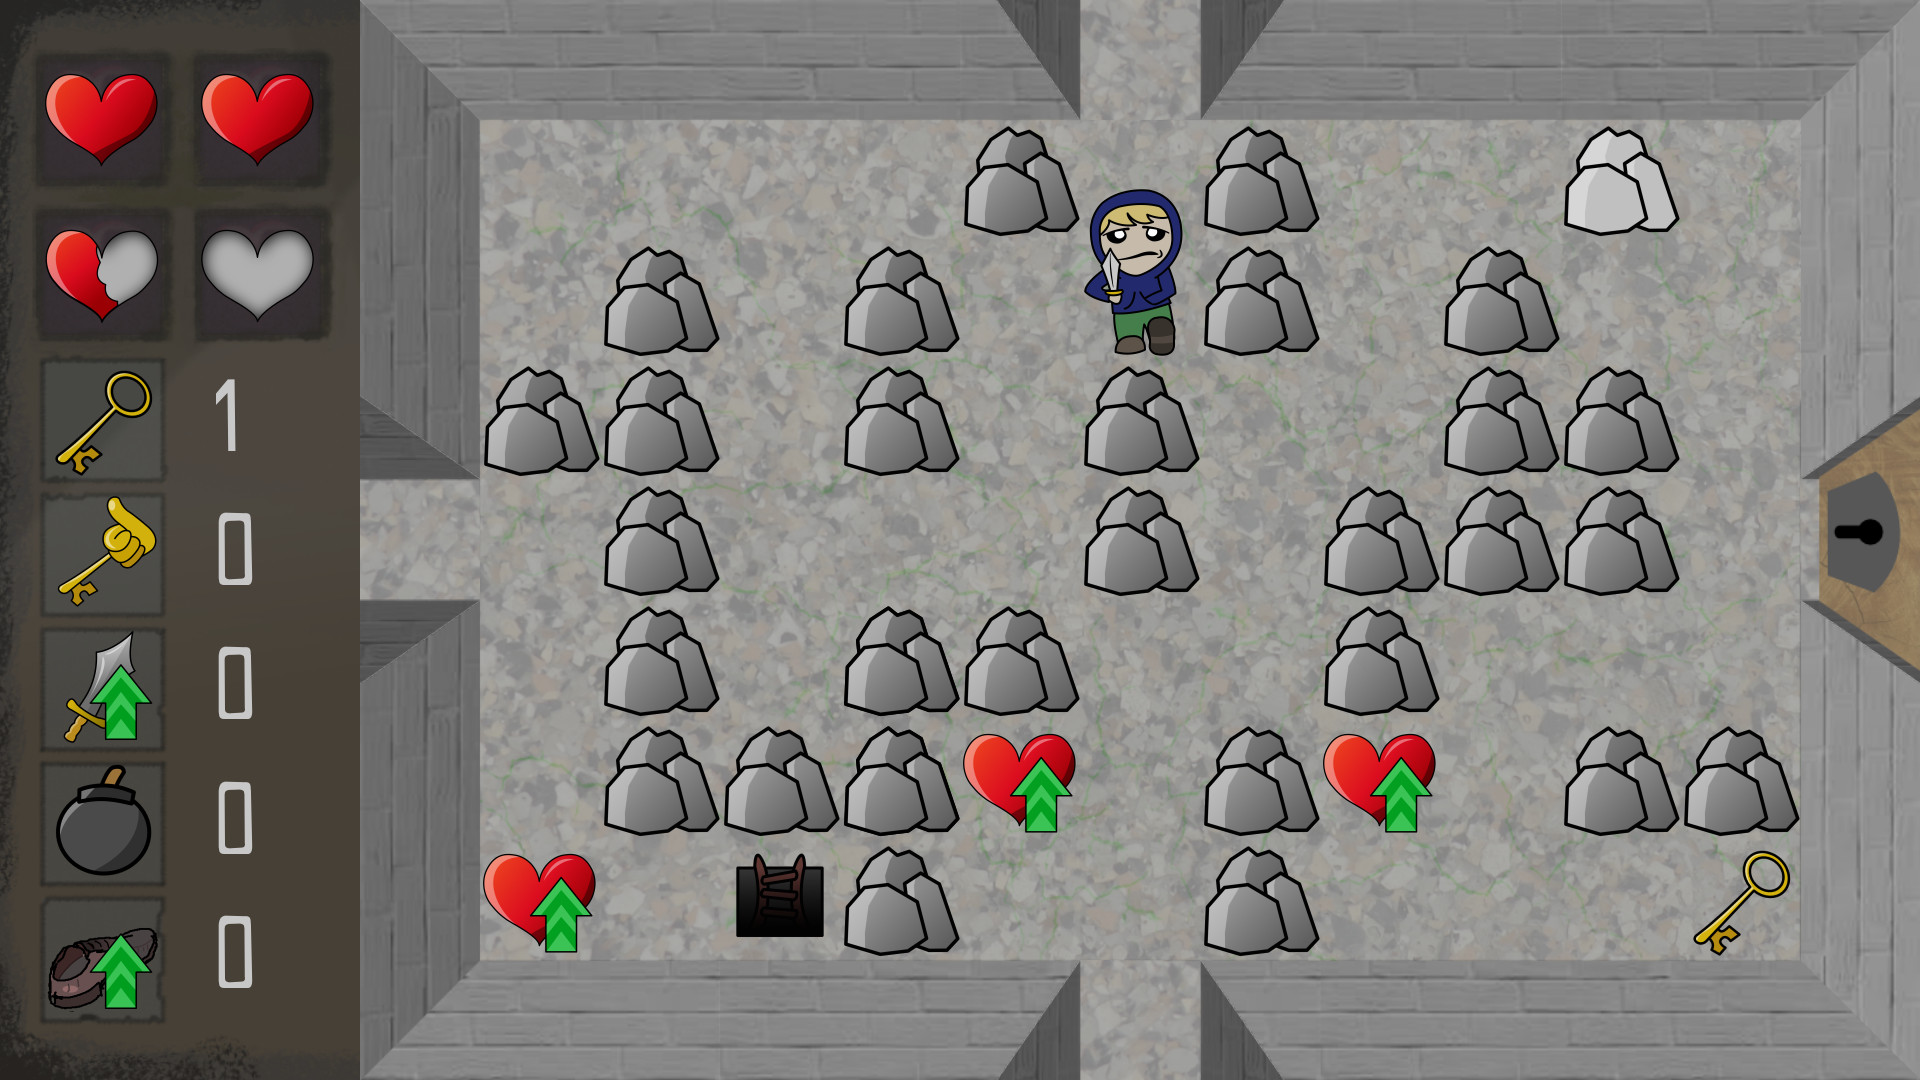 A screenshot of the first room in the game